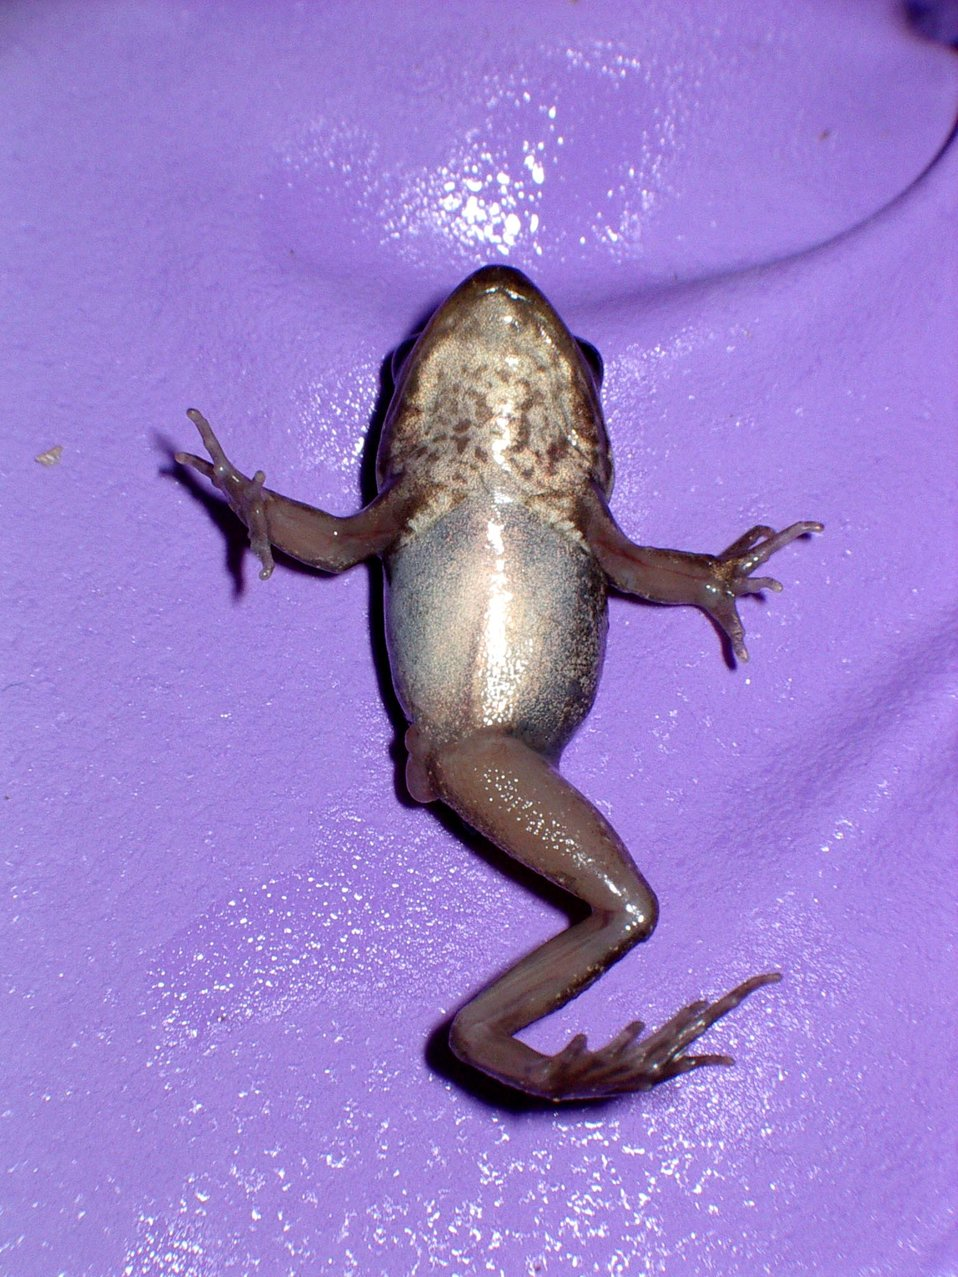 Wood frog with missing limb.